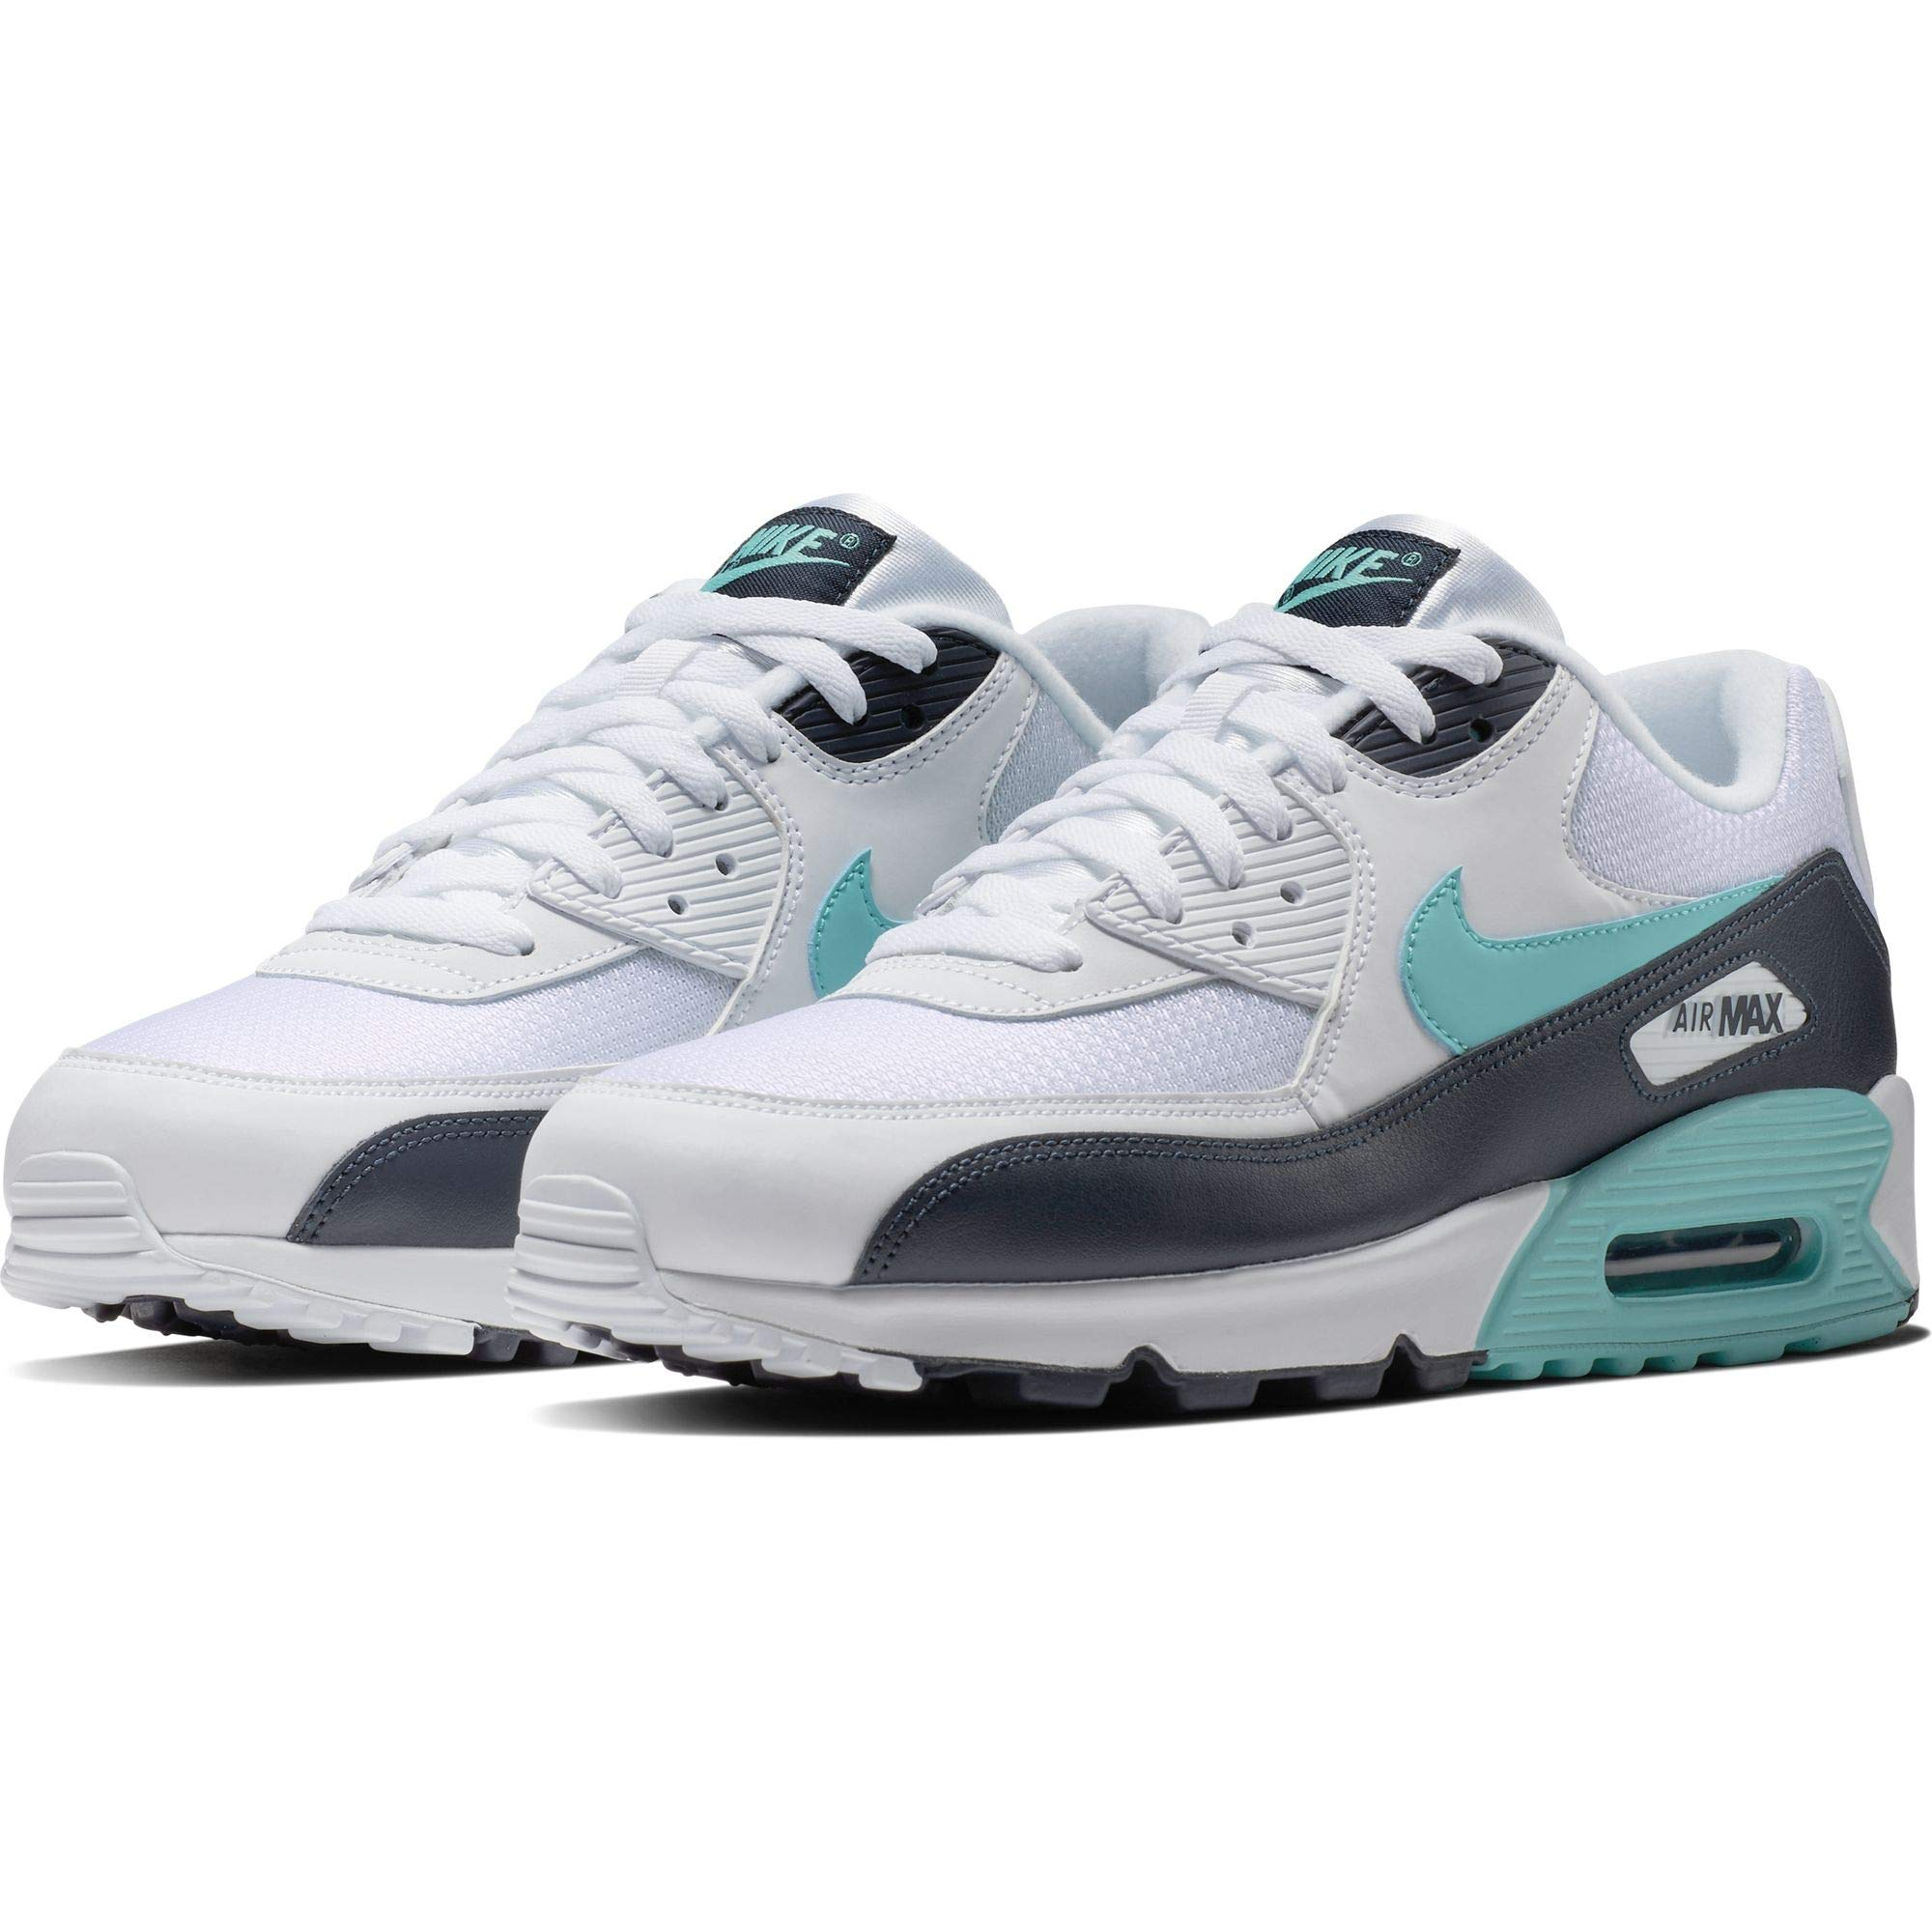 low priced f824c c1009 Nike Mens Air Max 90 Essential Running Shoes White Aurora Green Obsidian  AJ1285-102 Size 7.5